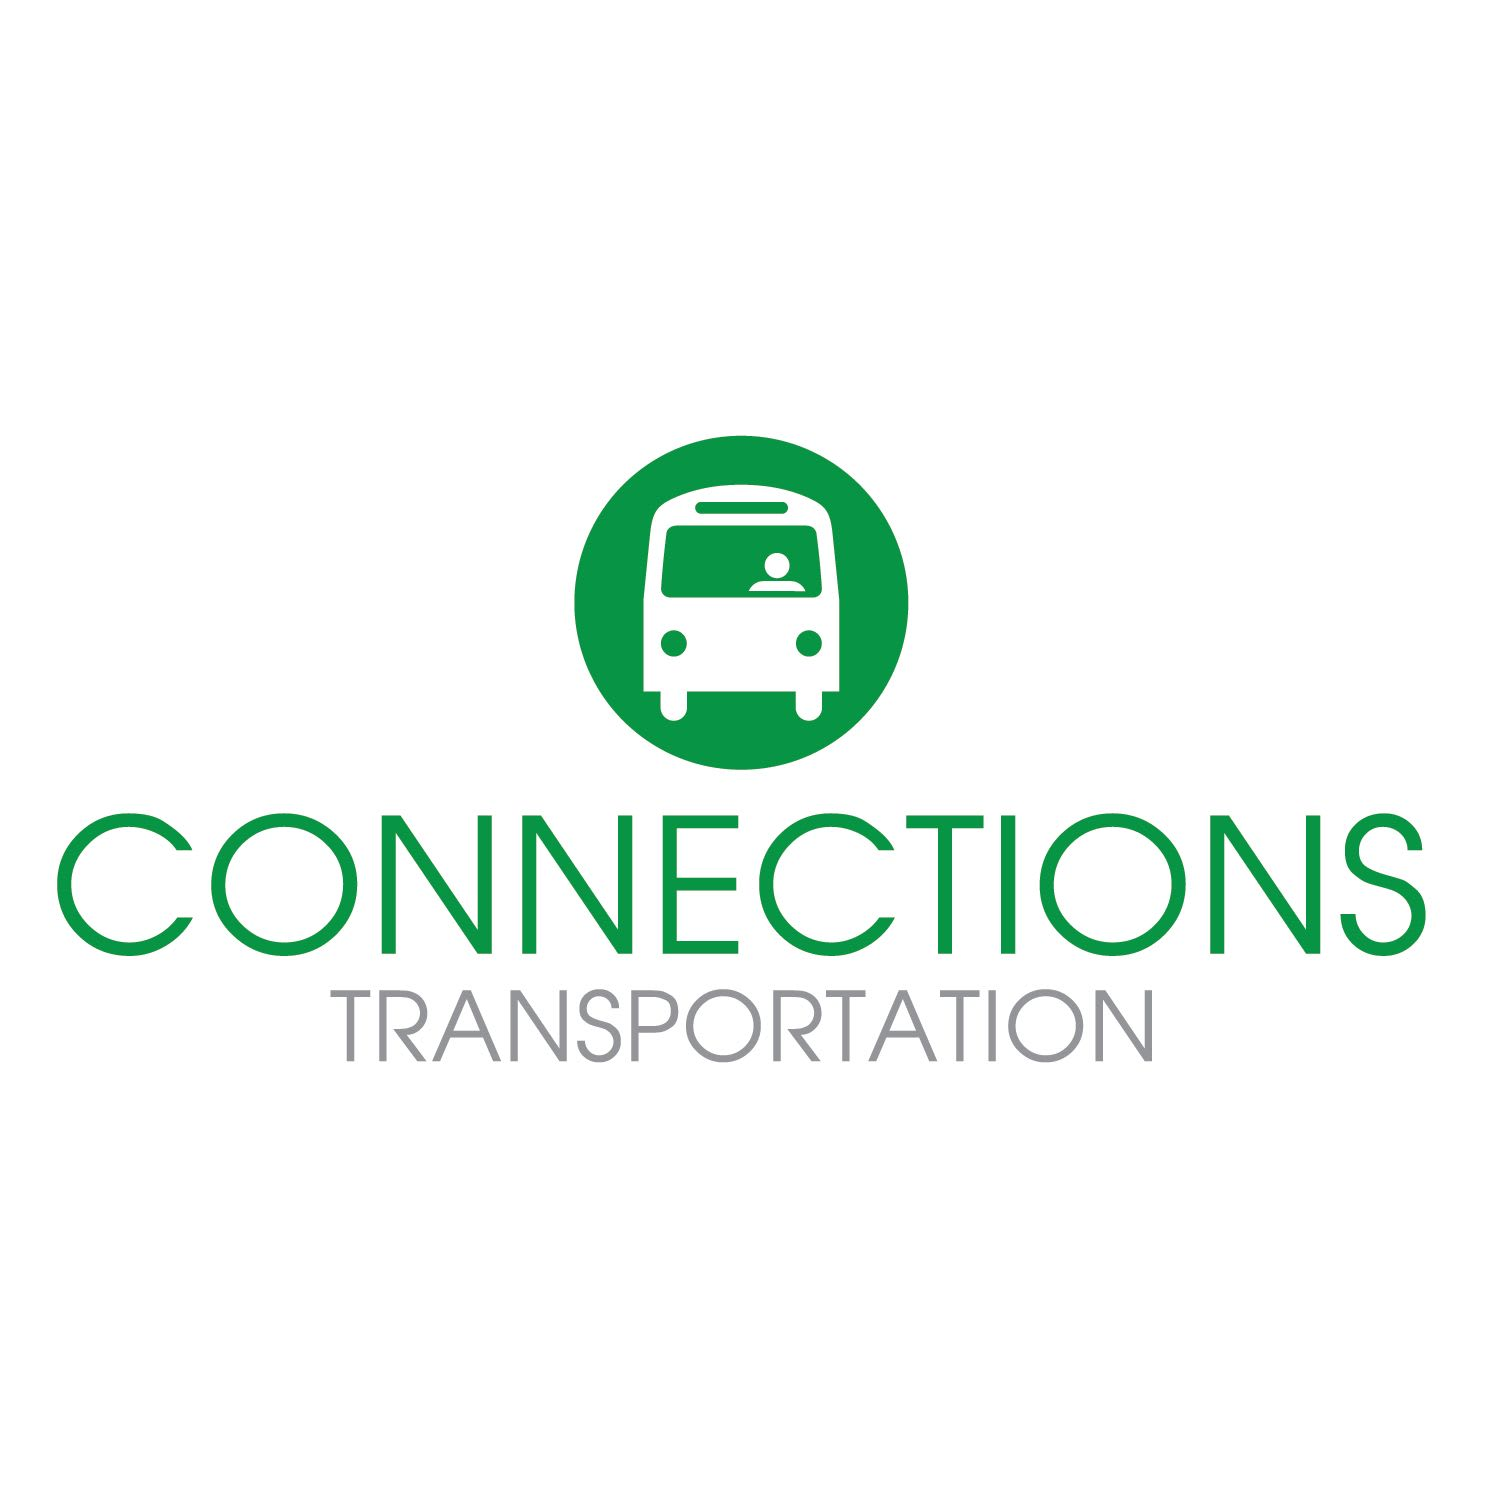 Senior living connections in Hoover for transportation and maintenance.